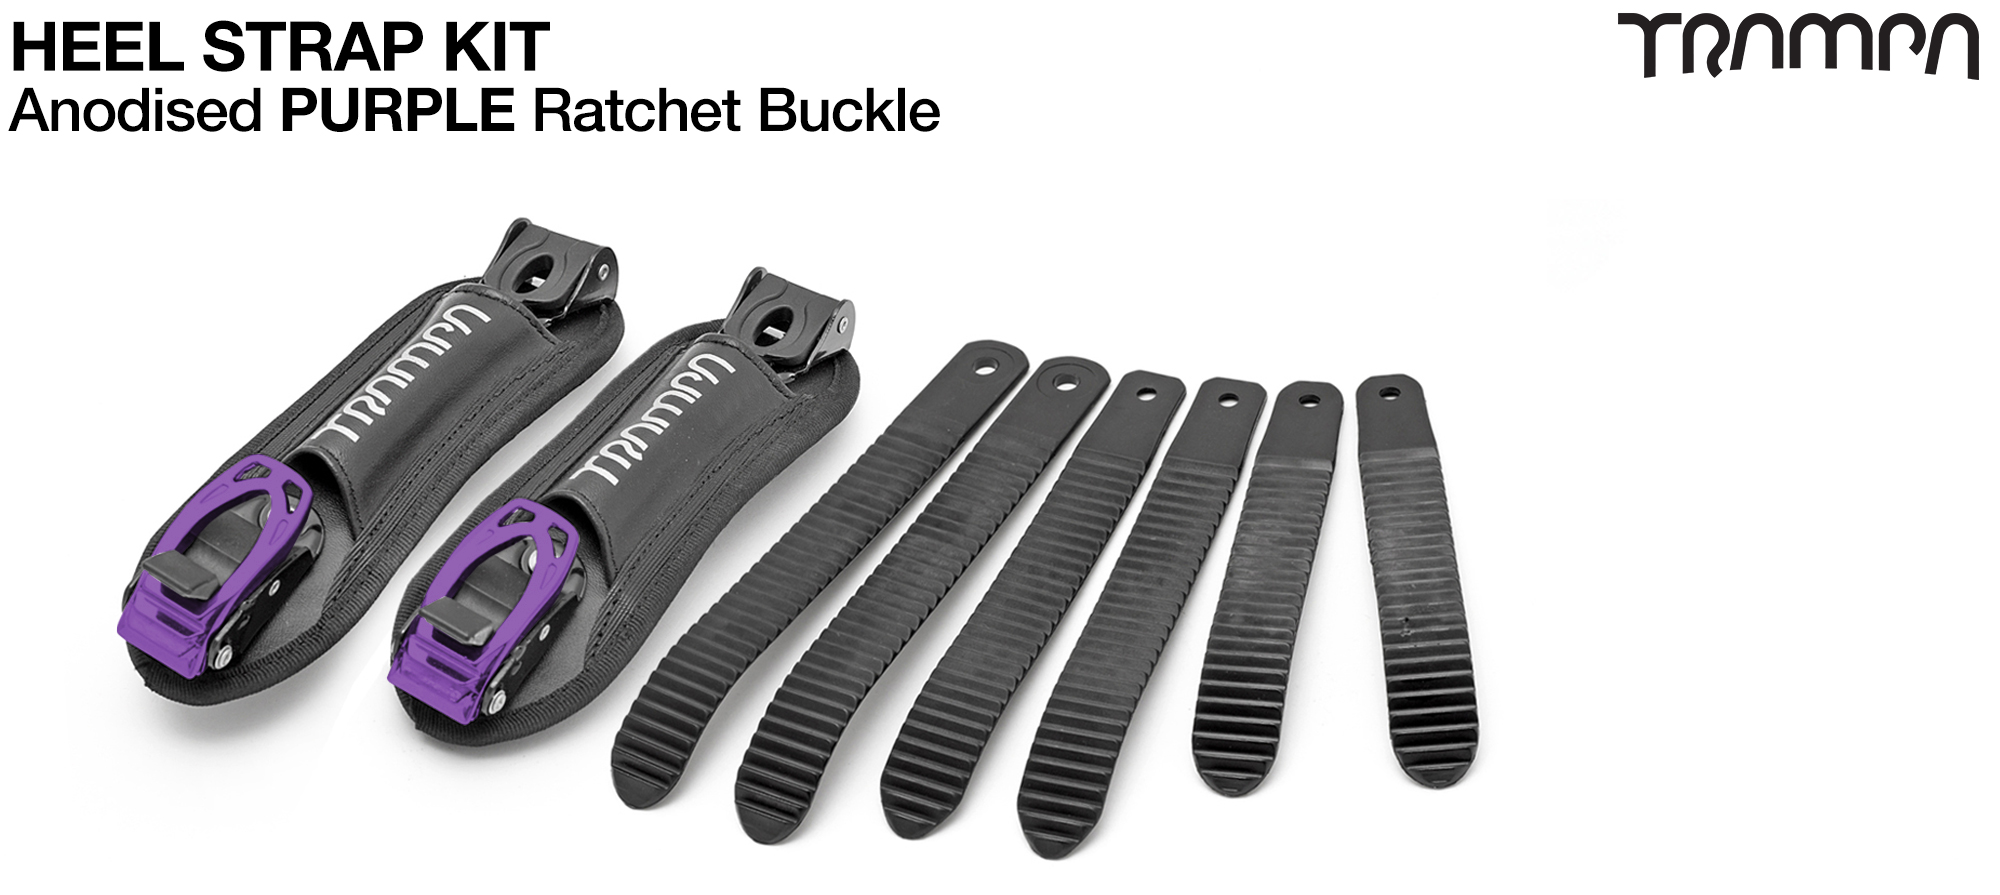 Heel Straps with PURPLE Ratchets - 30% Discount! (+£21)